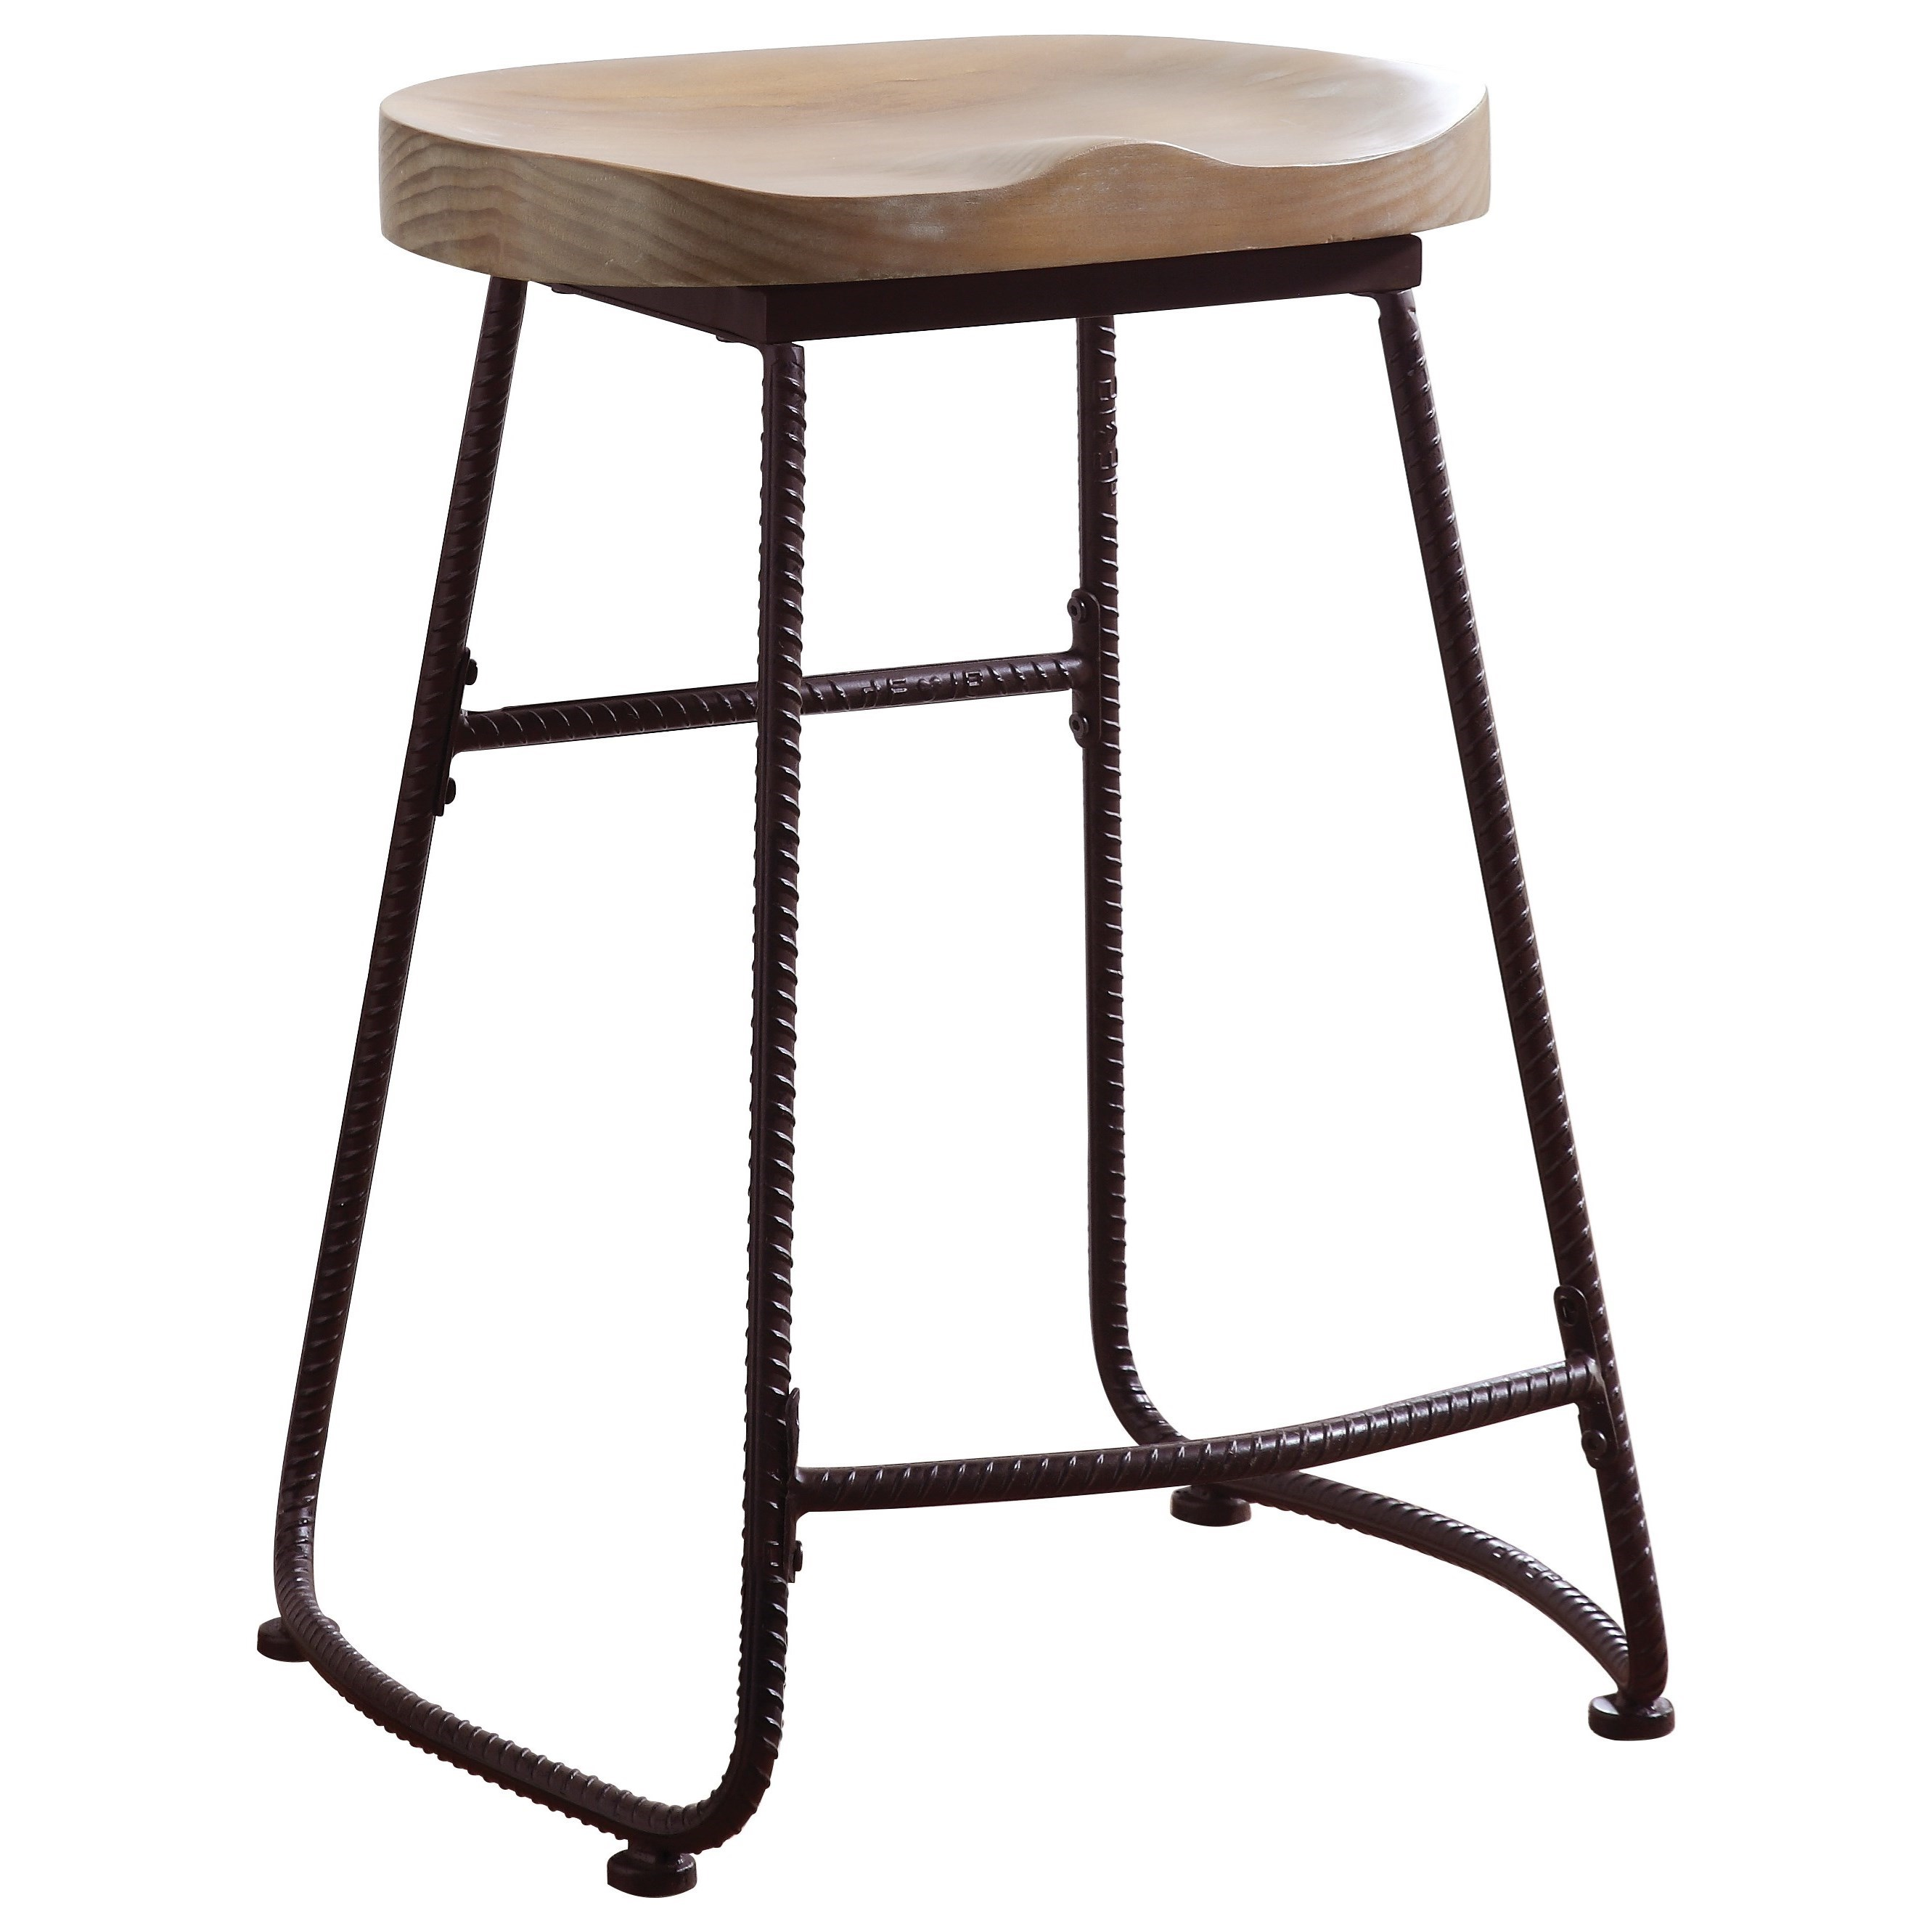 Dining Stools Coaster Dining Chairs And Bar Stools 101085 Rustic Counter